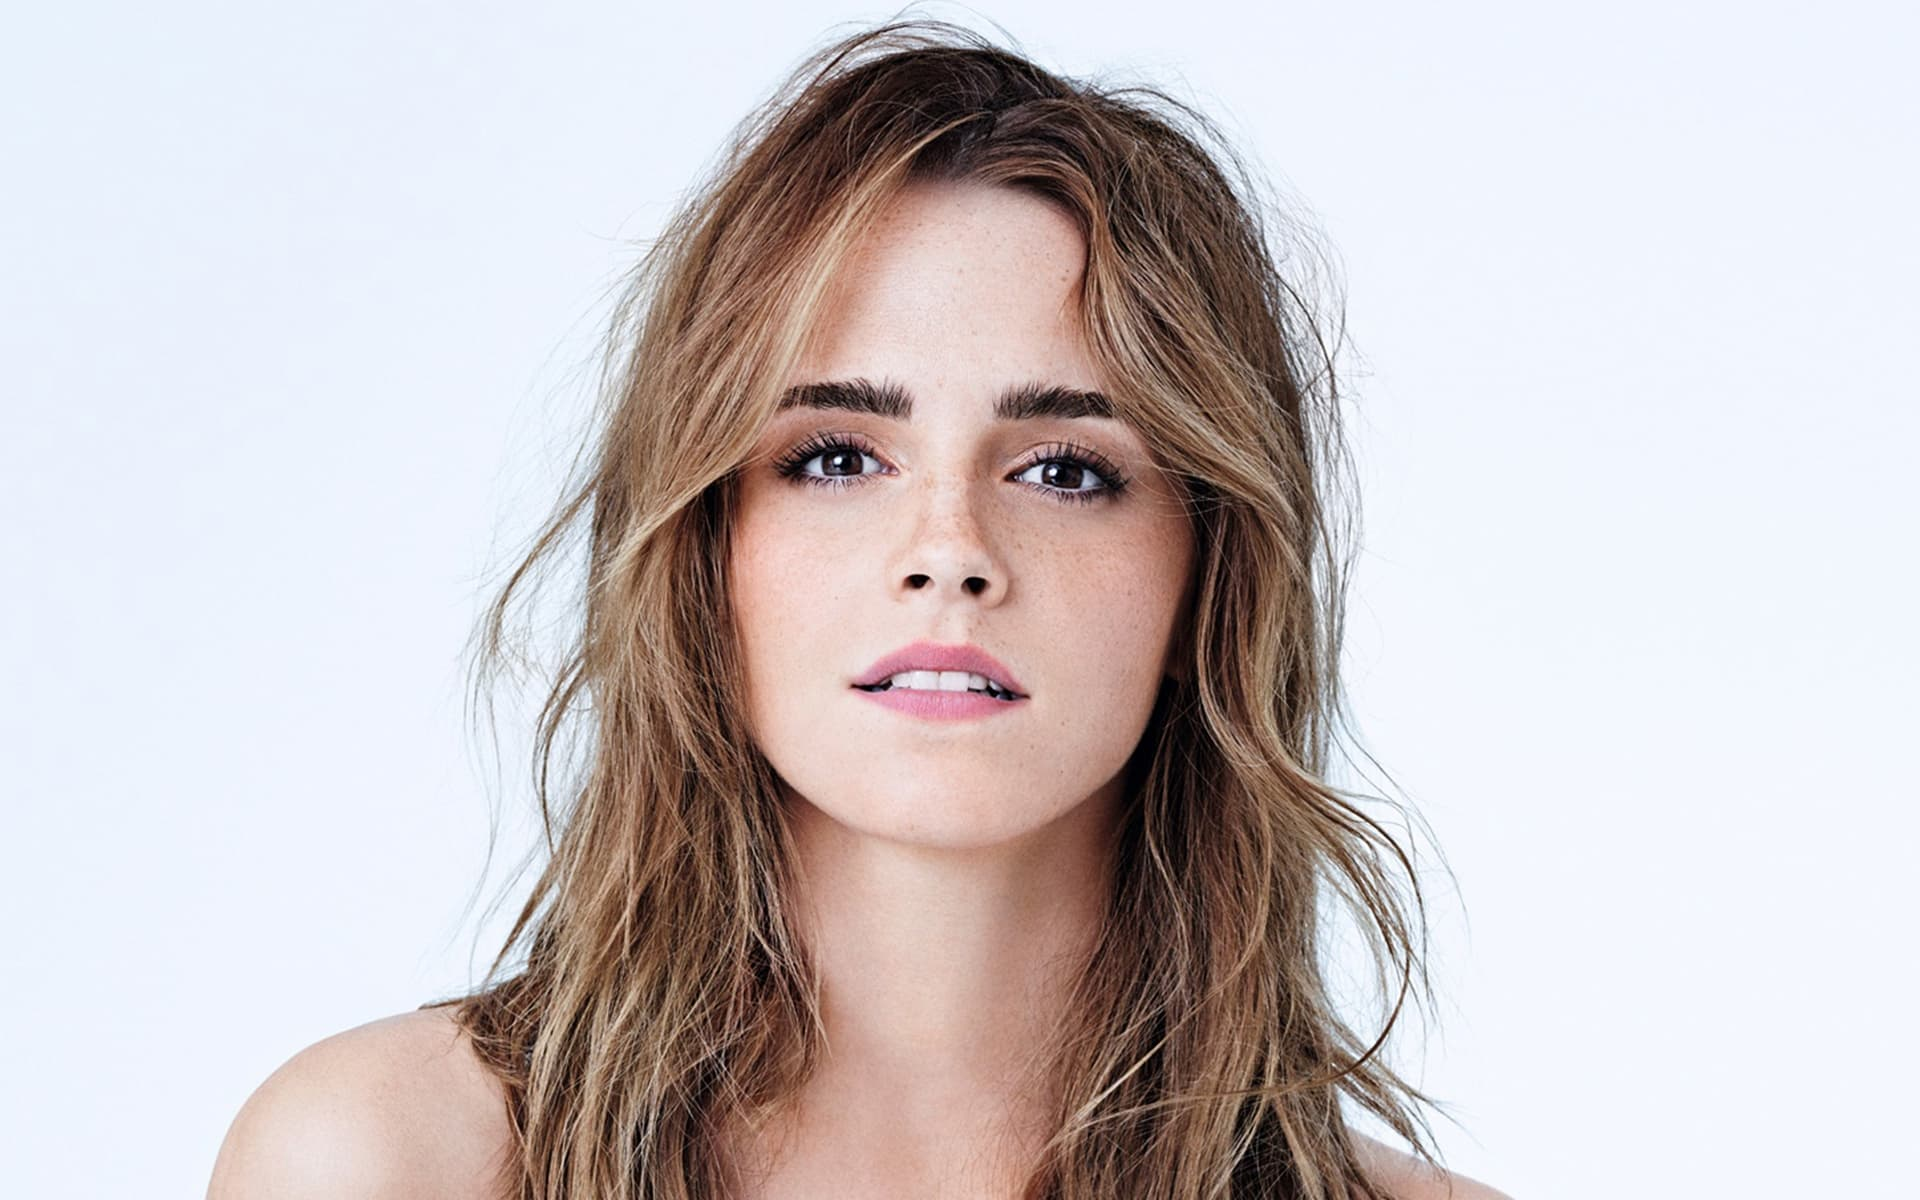 Emma Watson Wallpapers Top Free Emma Watson Backgrounds